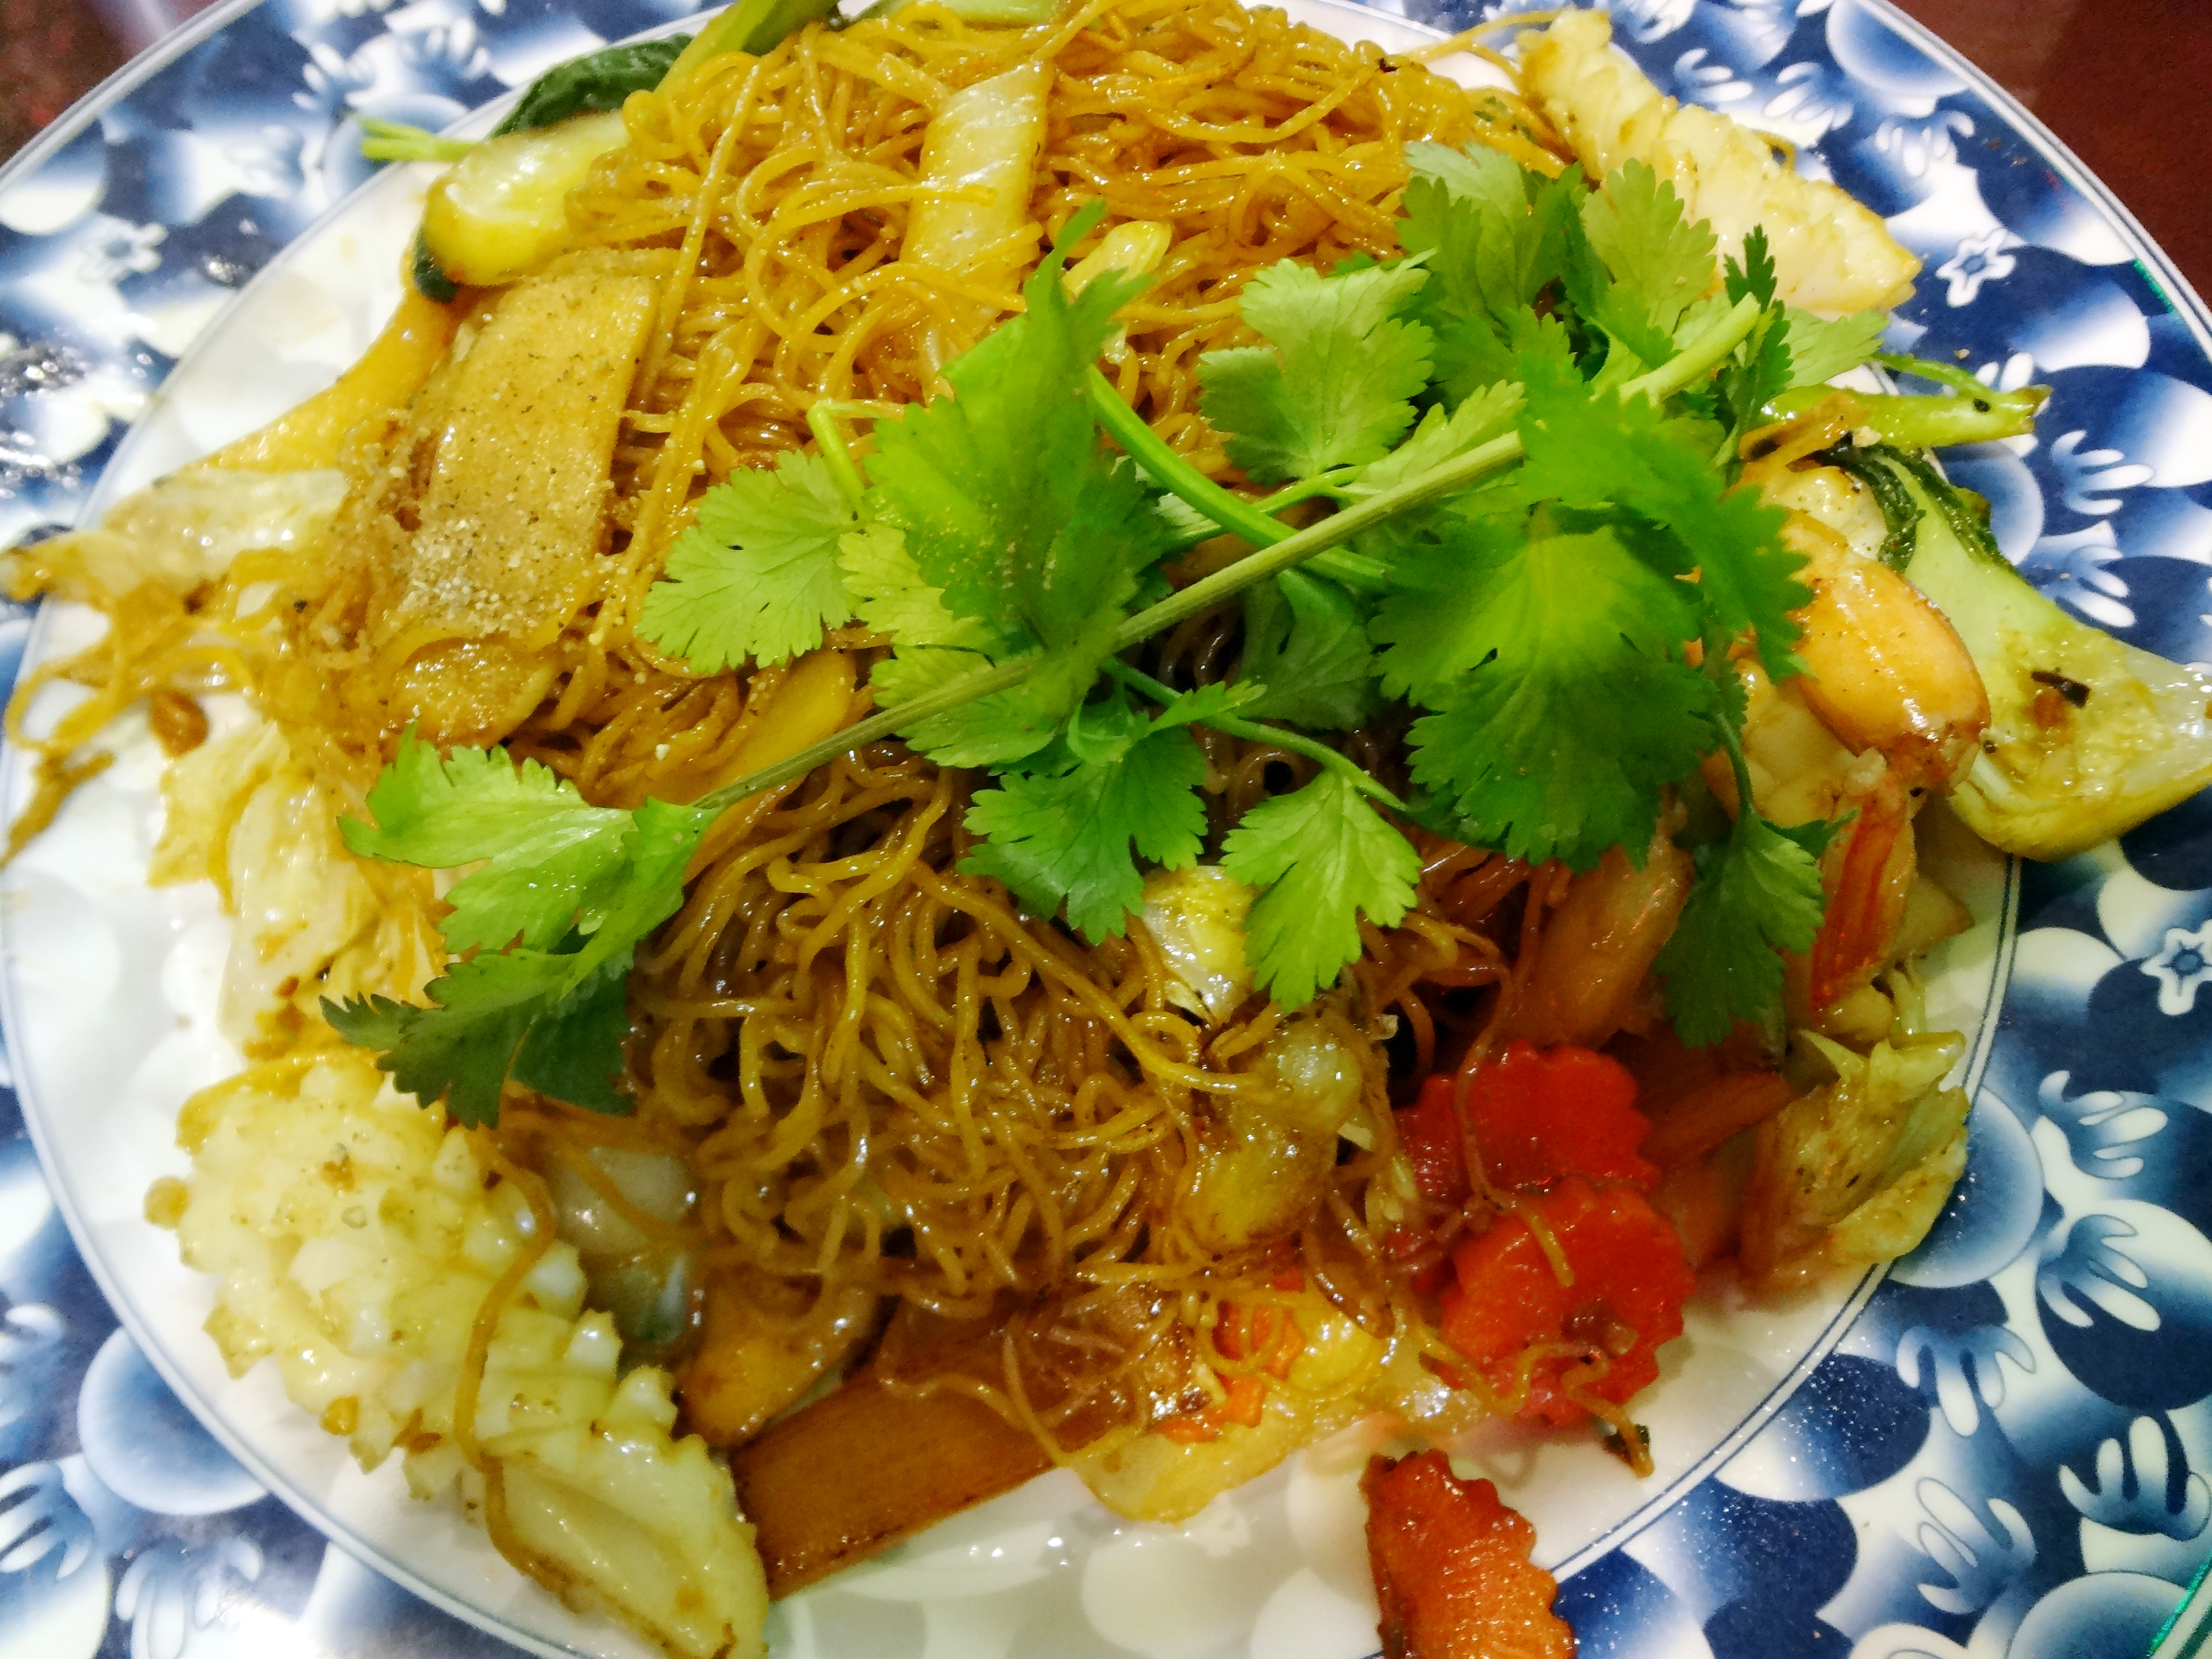 Mi Xao Mem Thap Cam - soft egg noodles stir-fried with sauteed seafood and mixed vegetables